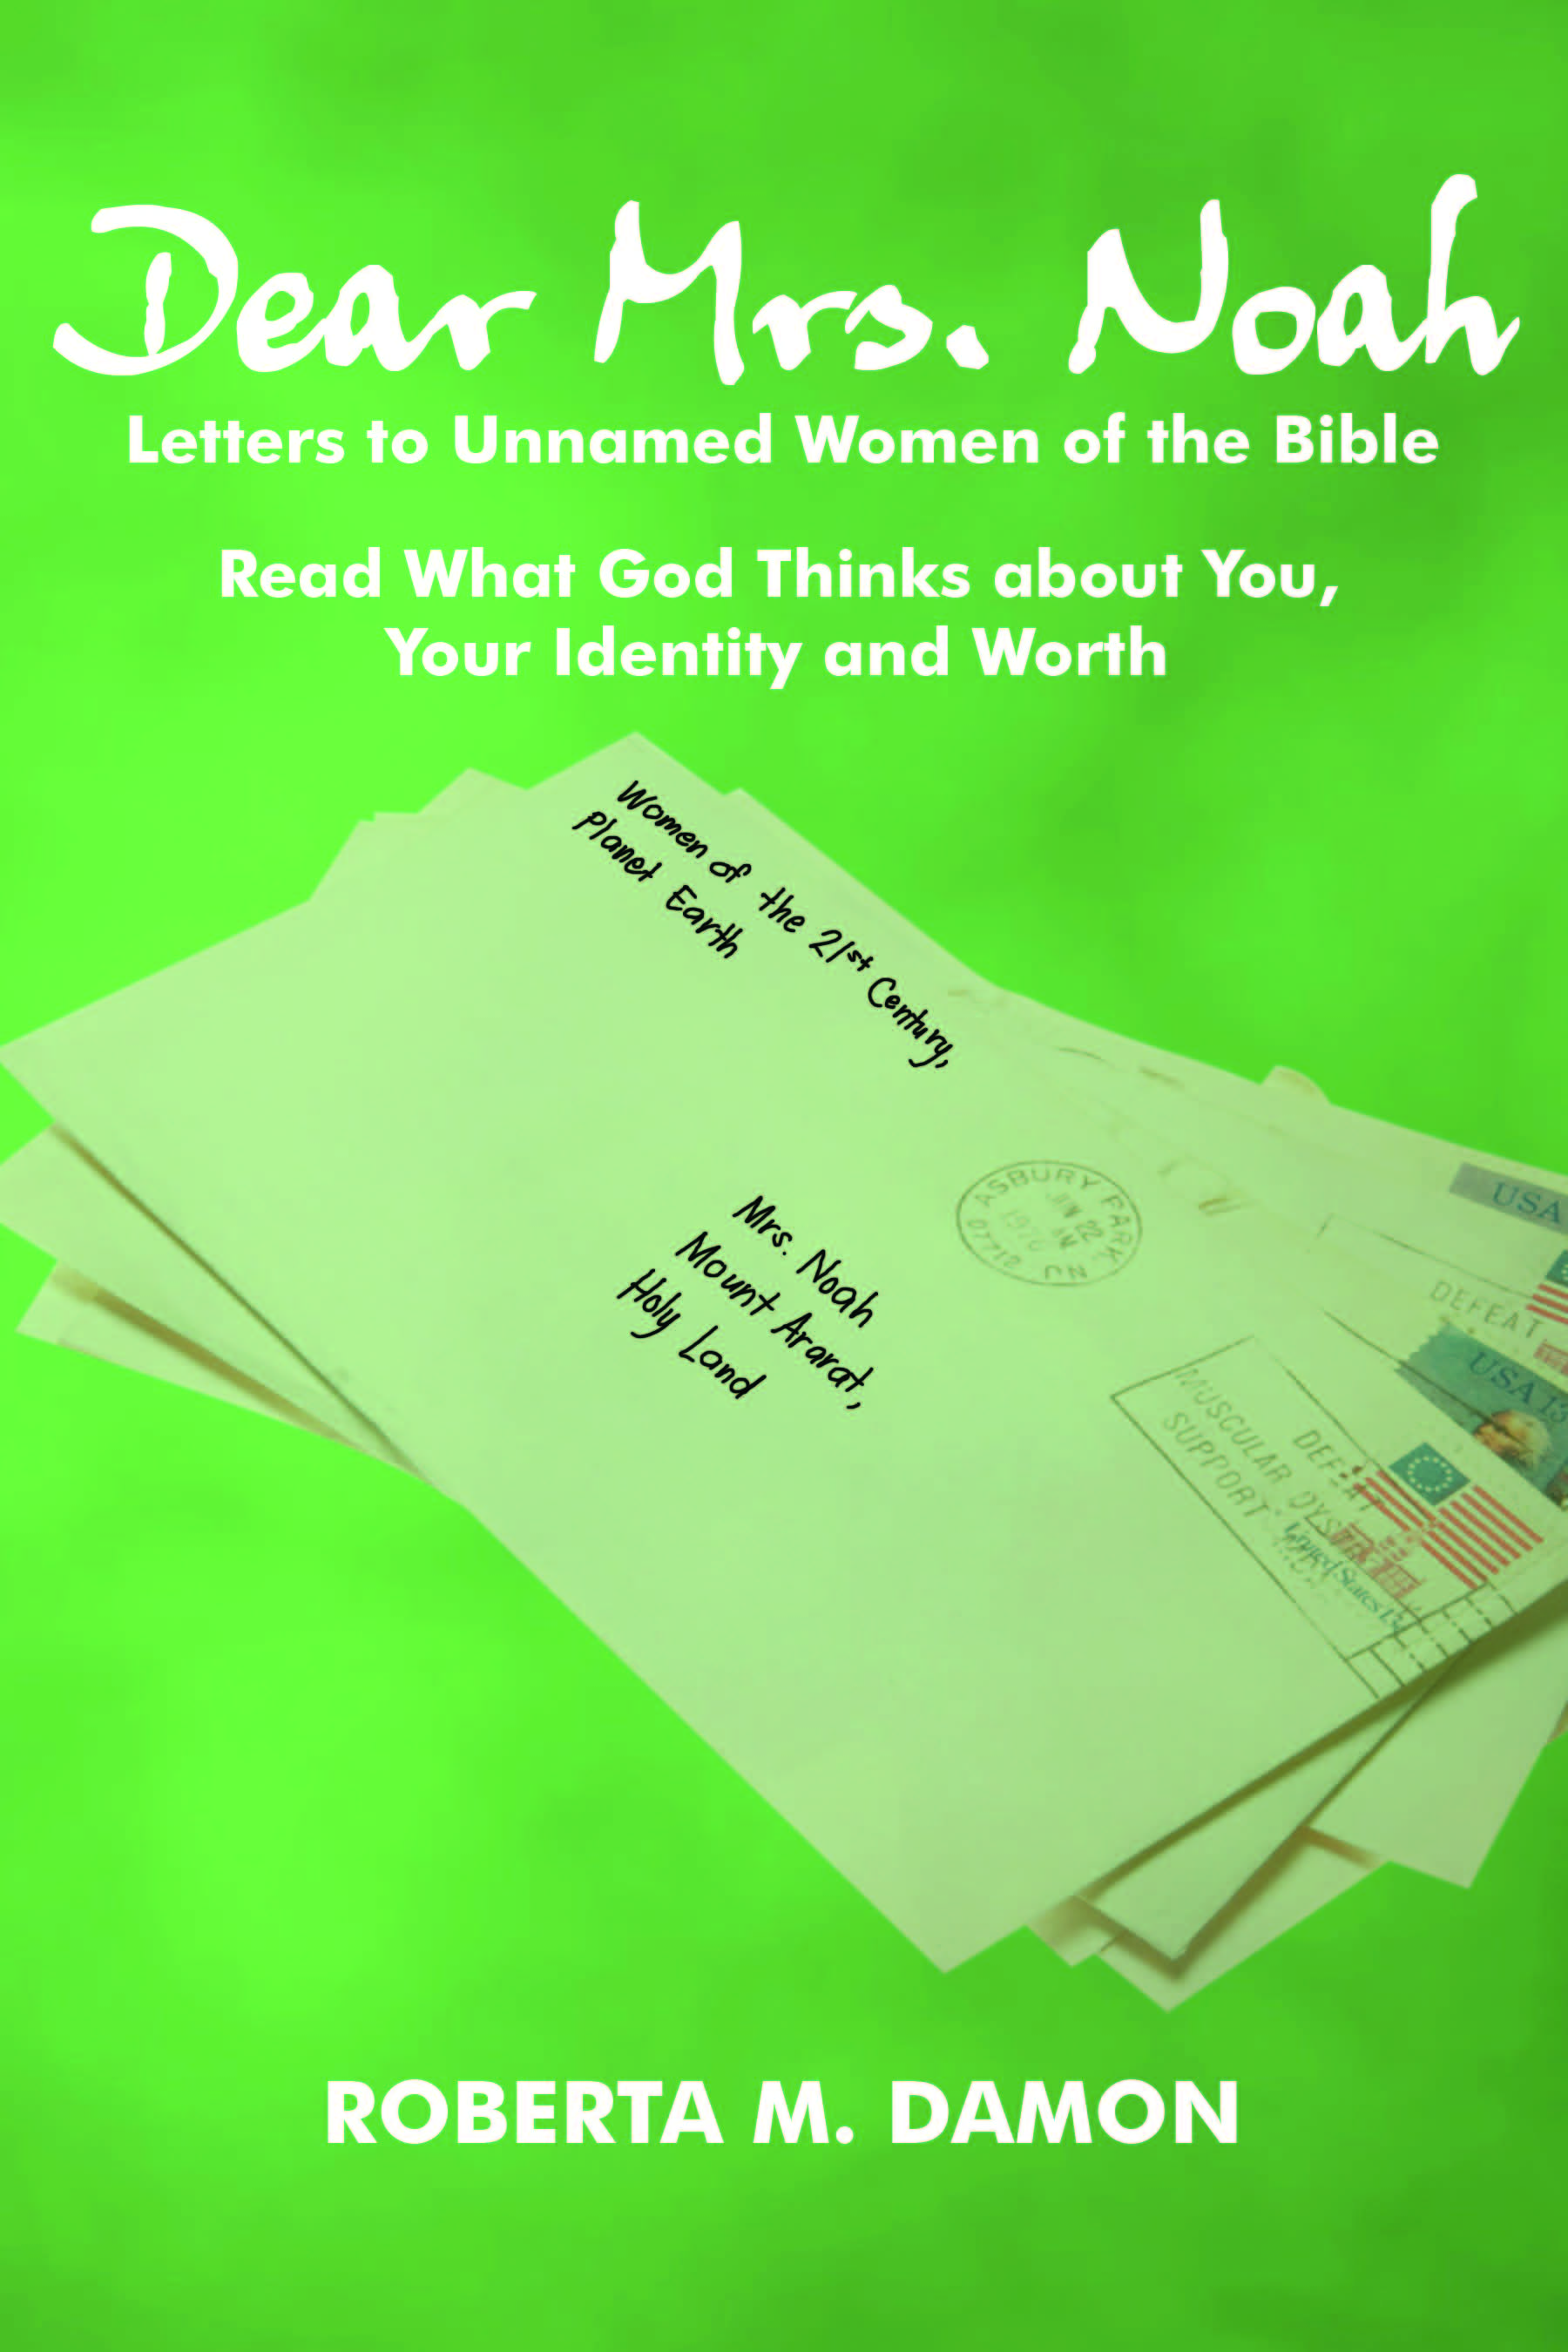 Dear Mrs. Noah: Letters to Unnamed Women of the Bible